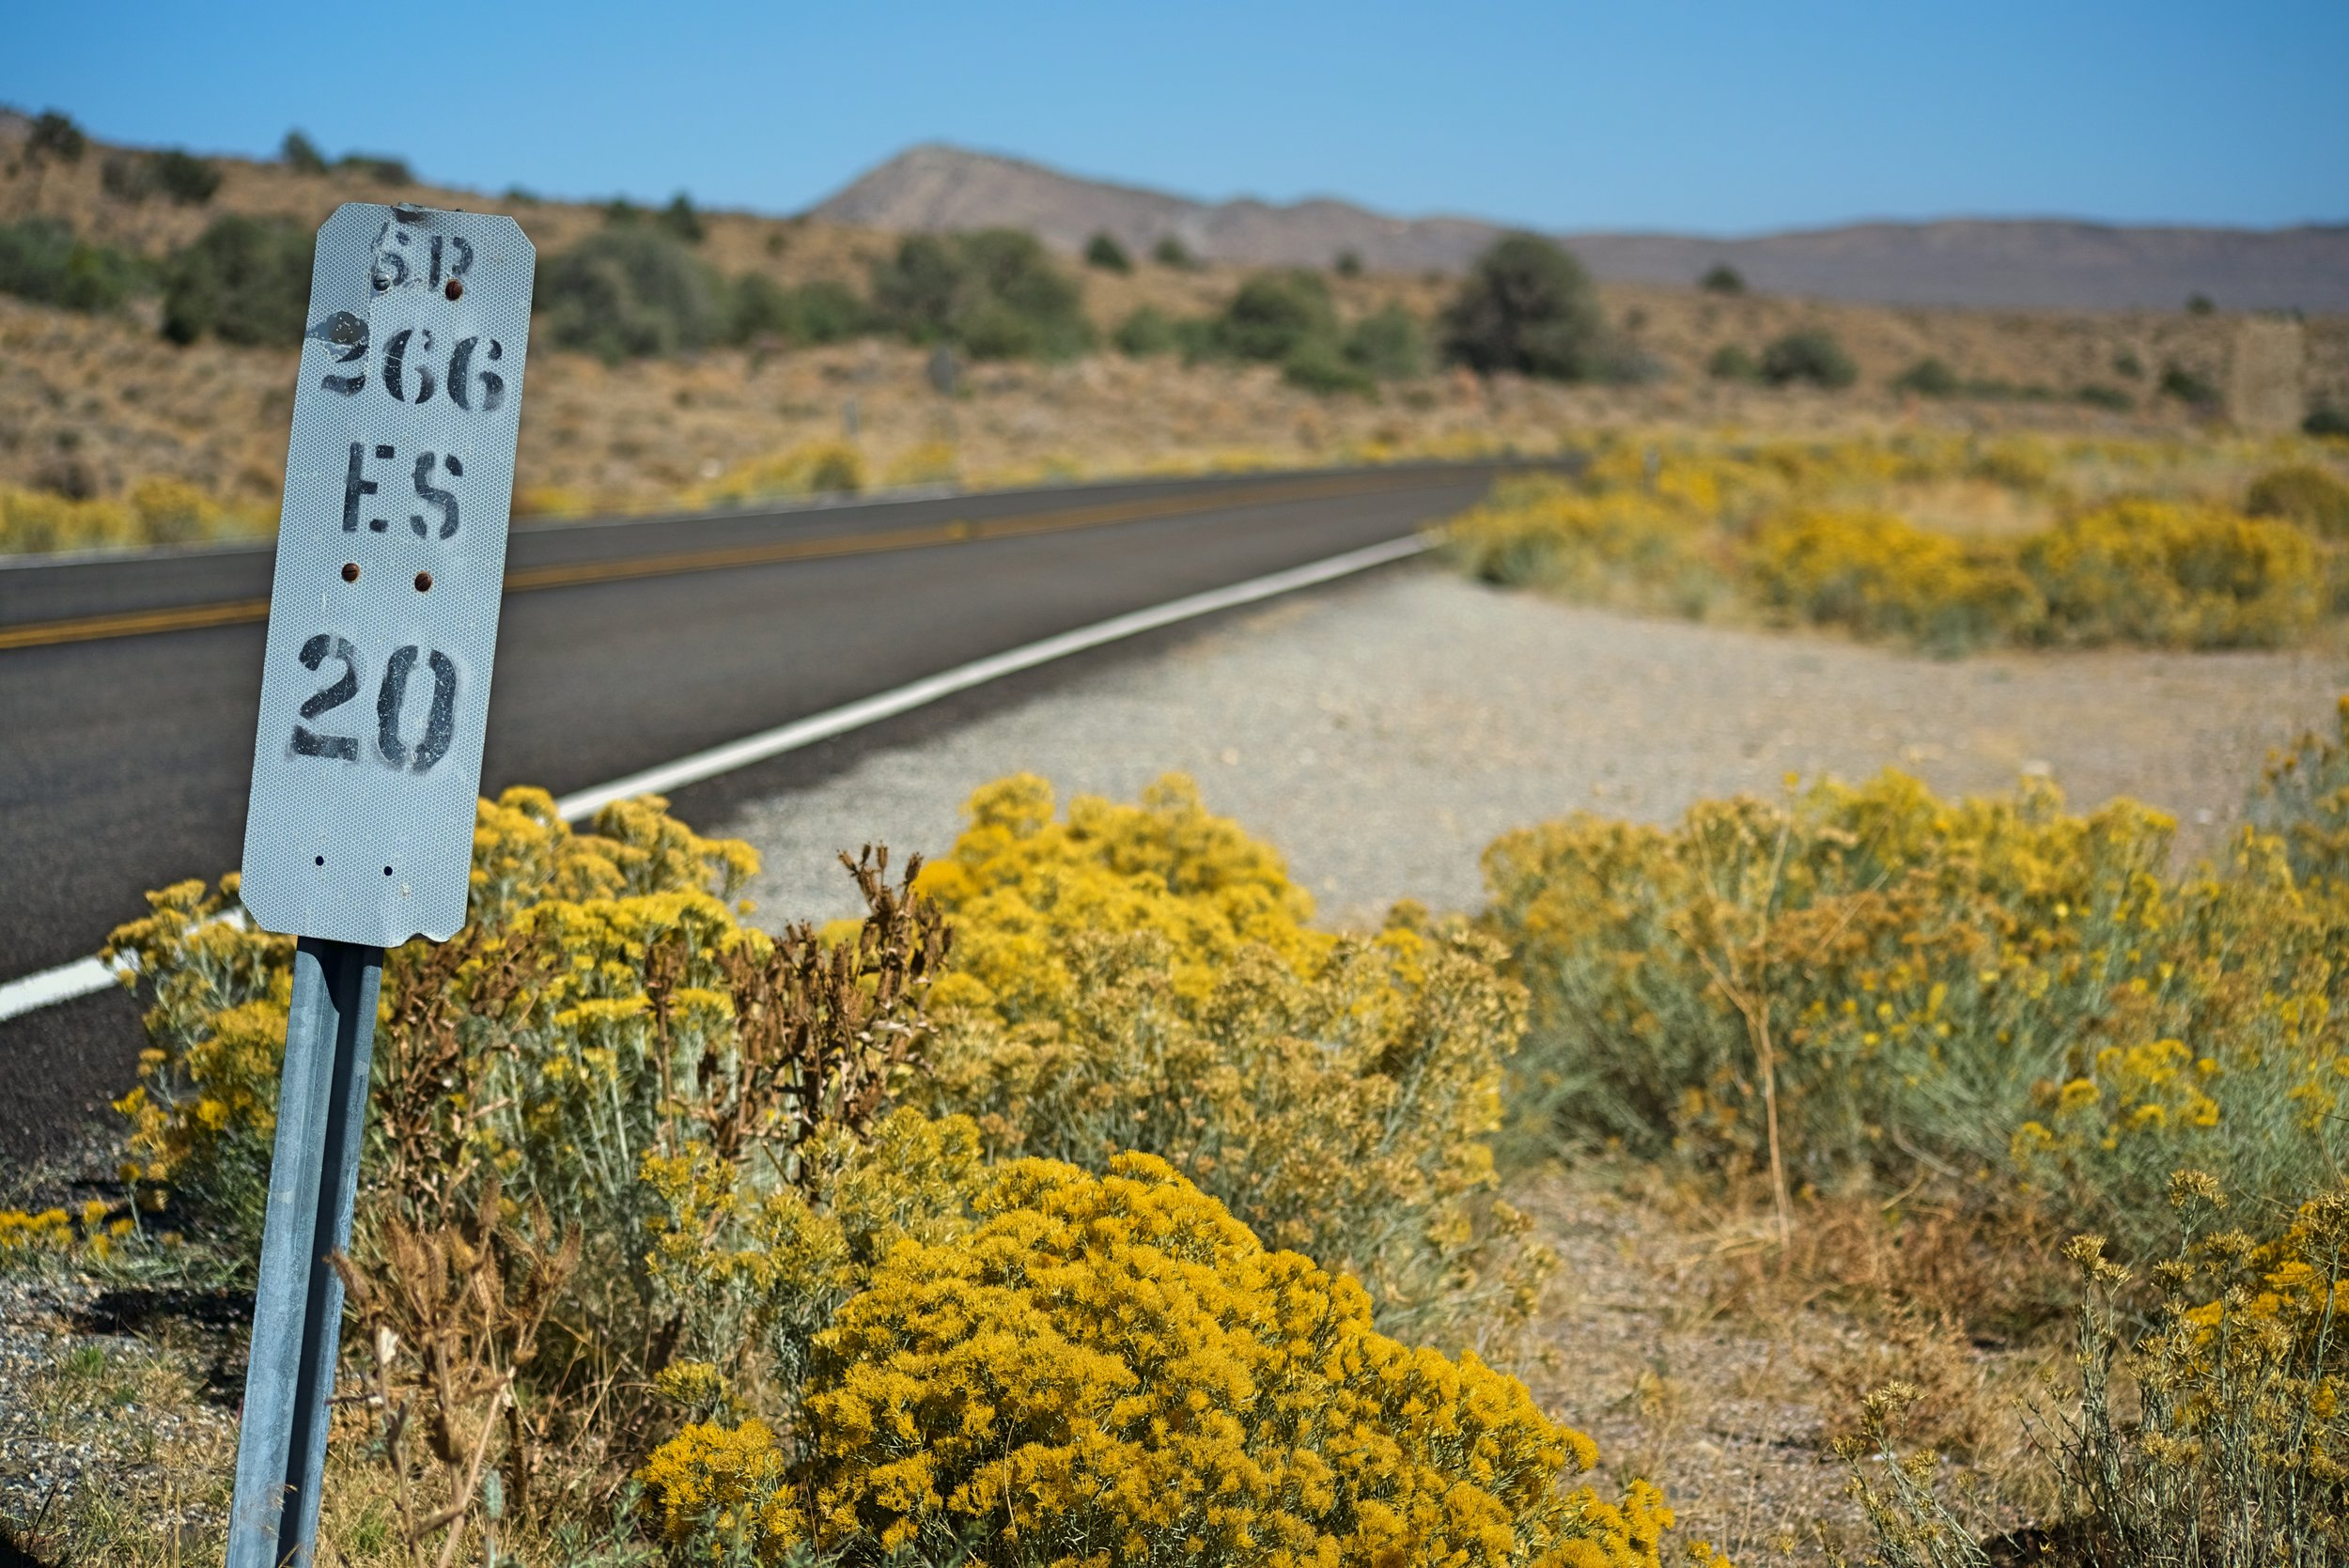 The rabbit brush was blooming while we were traveling through this area of Nevada.